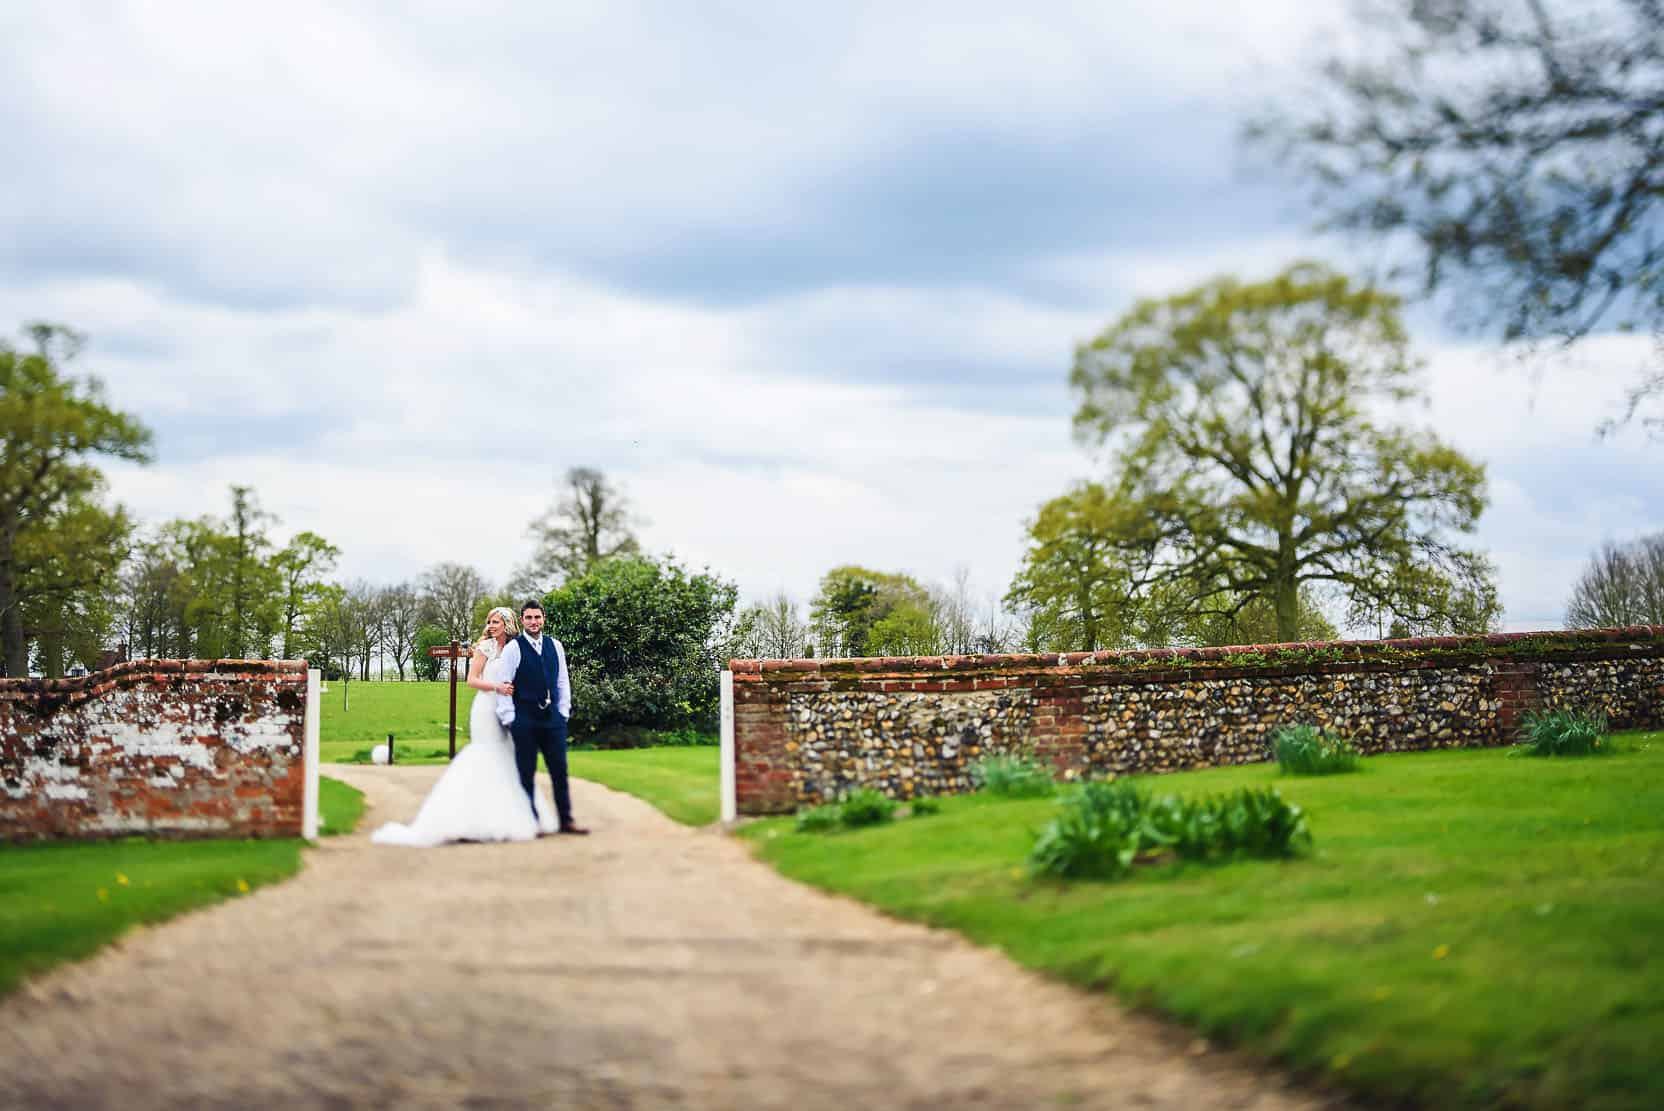 Wedding_Photography_Spains_Hall_Essex_Justin_Bailey_Photography_Natalie_and_Tim_16